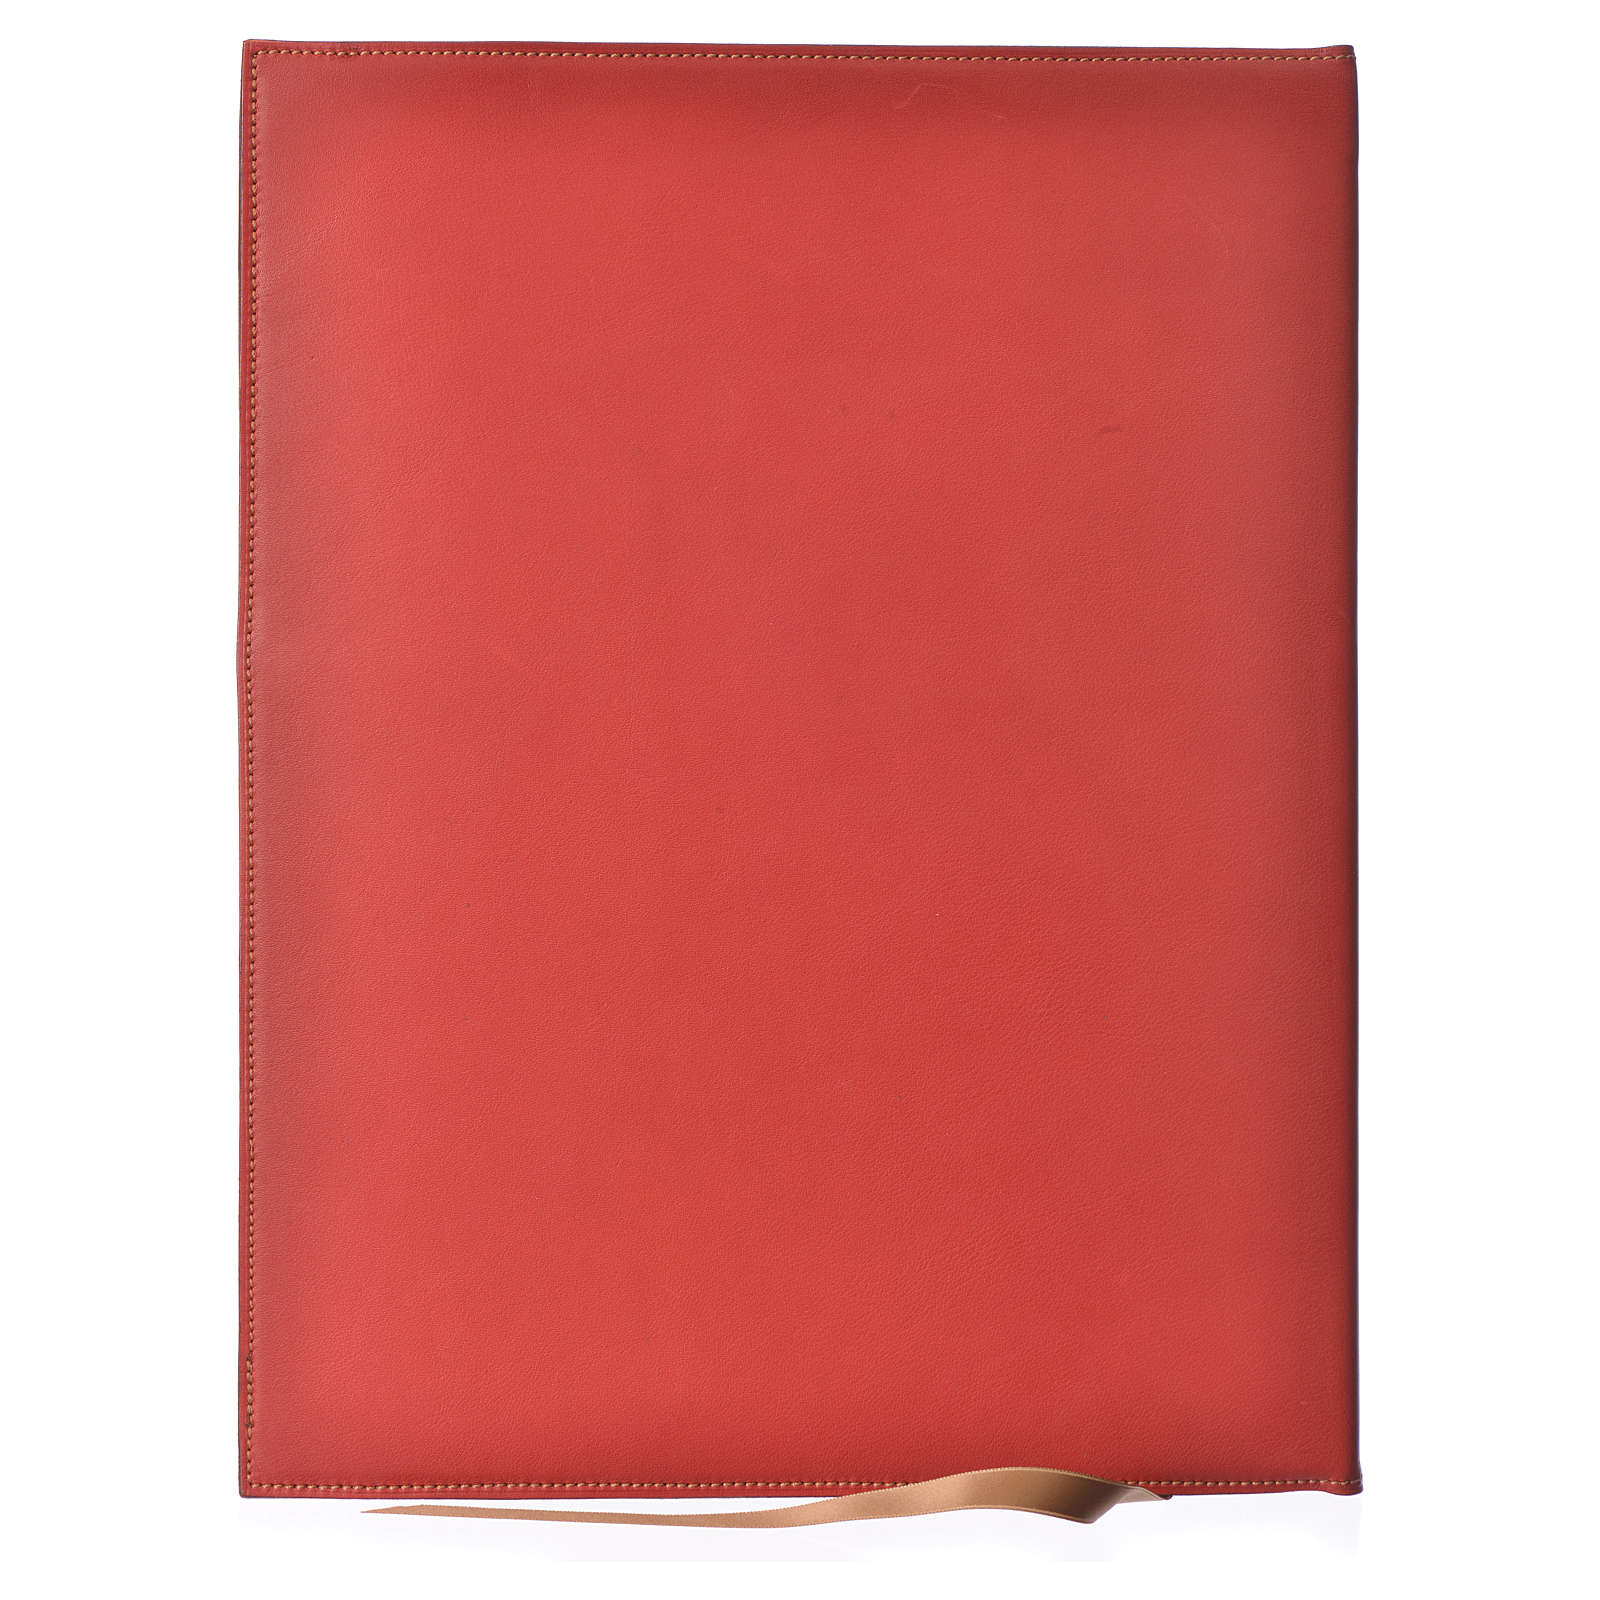 Folder for Sacred Rites in Red Leather with Hot Pressed Golden Lamb Bethlehem, A4 size 4